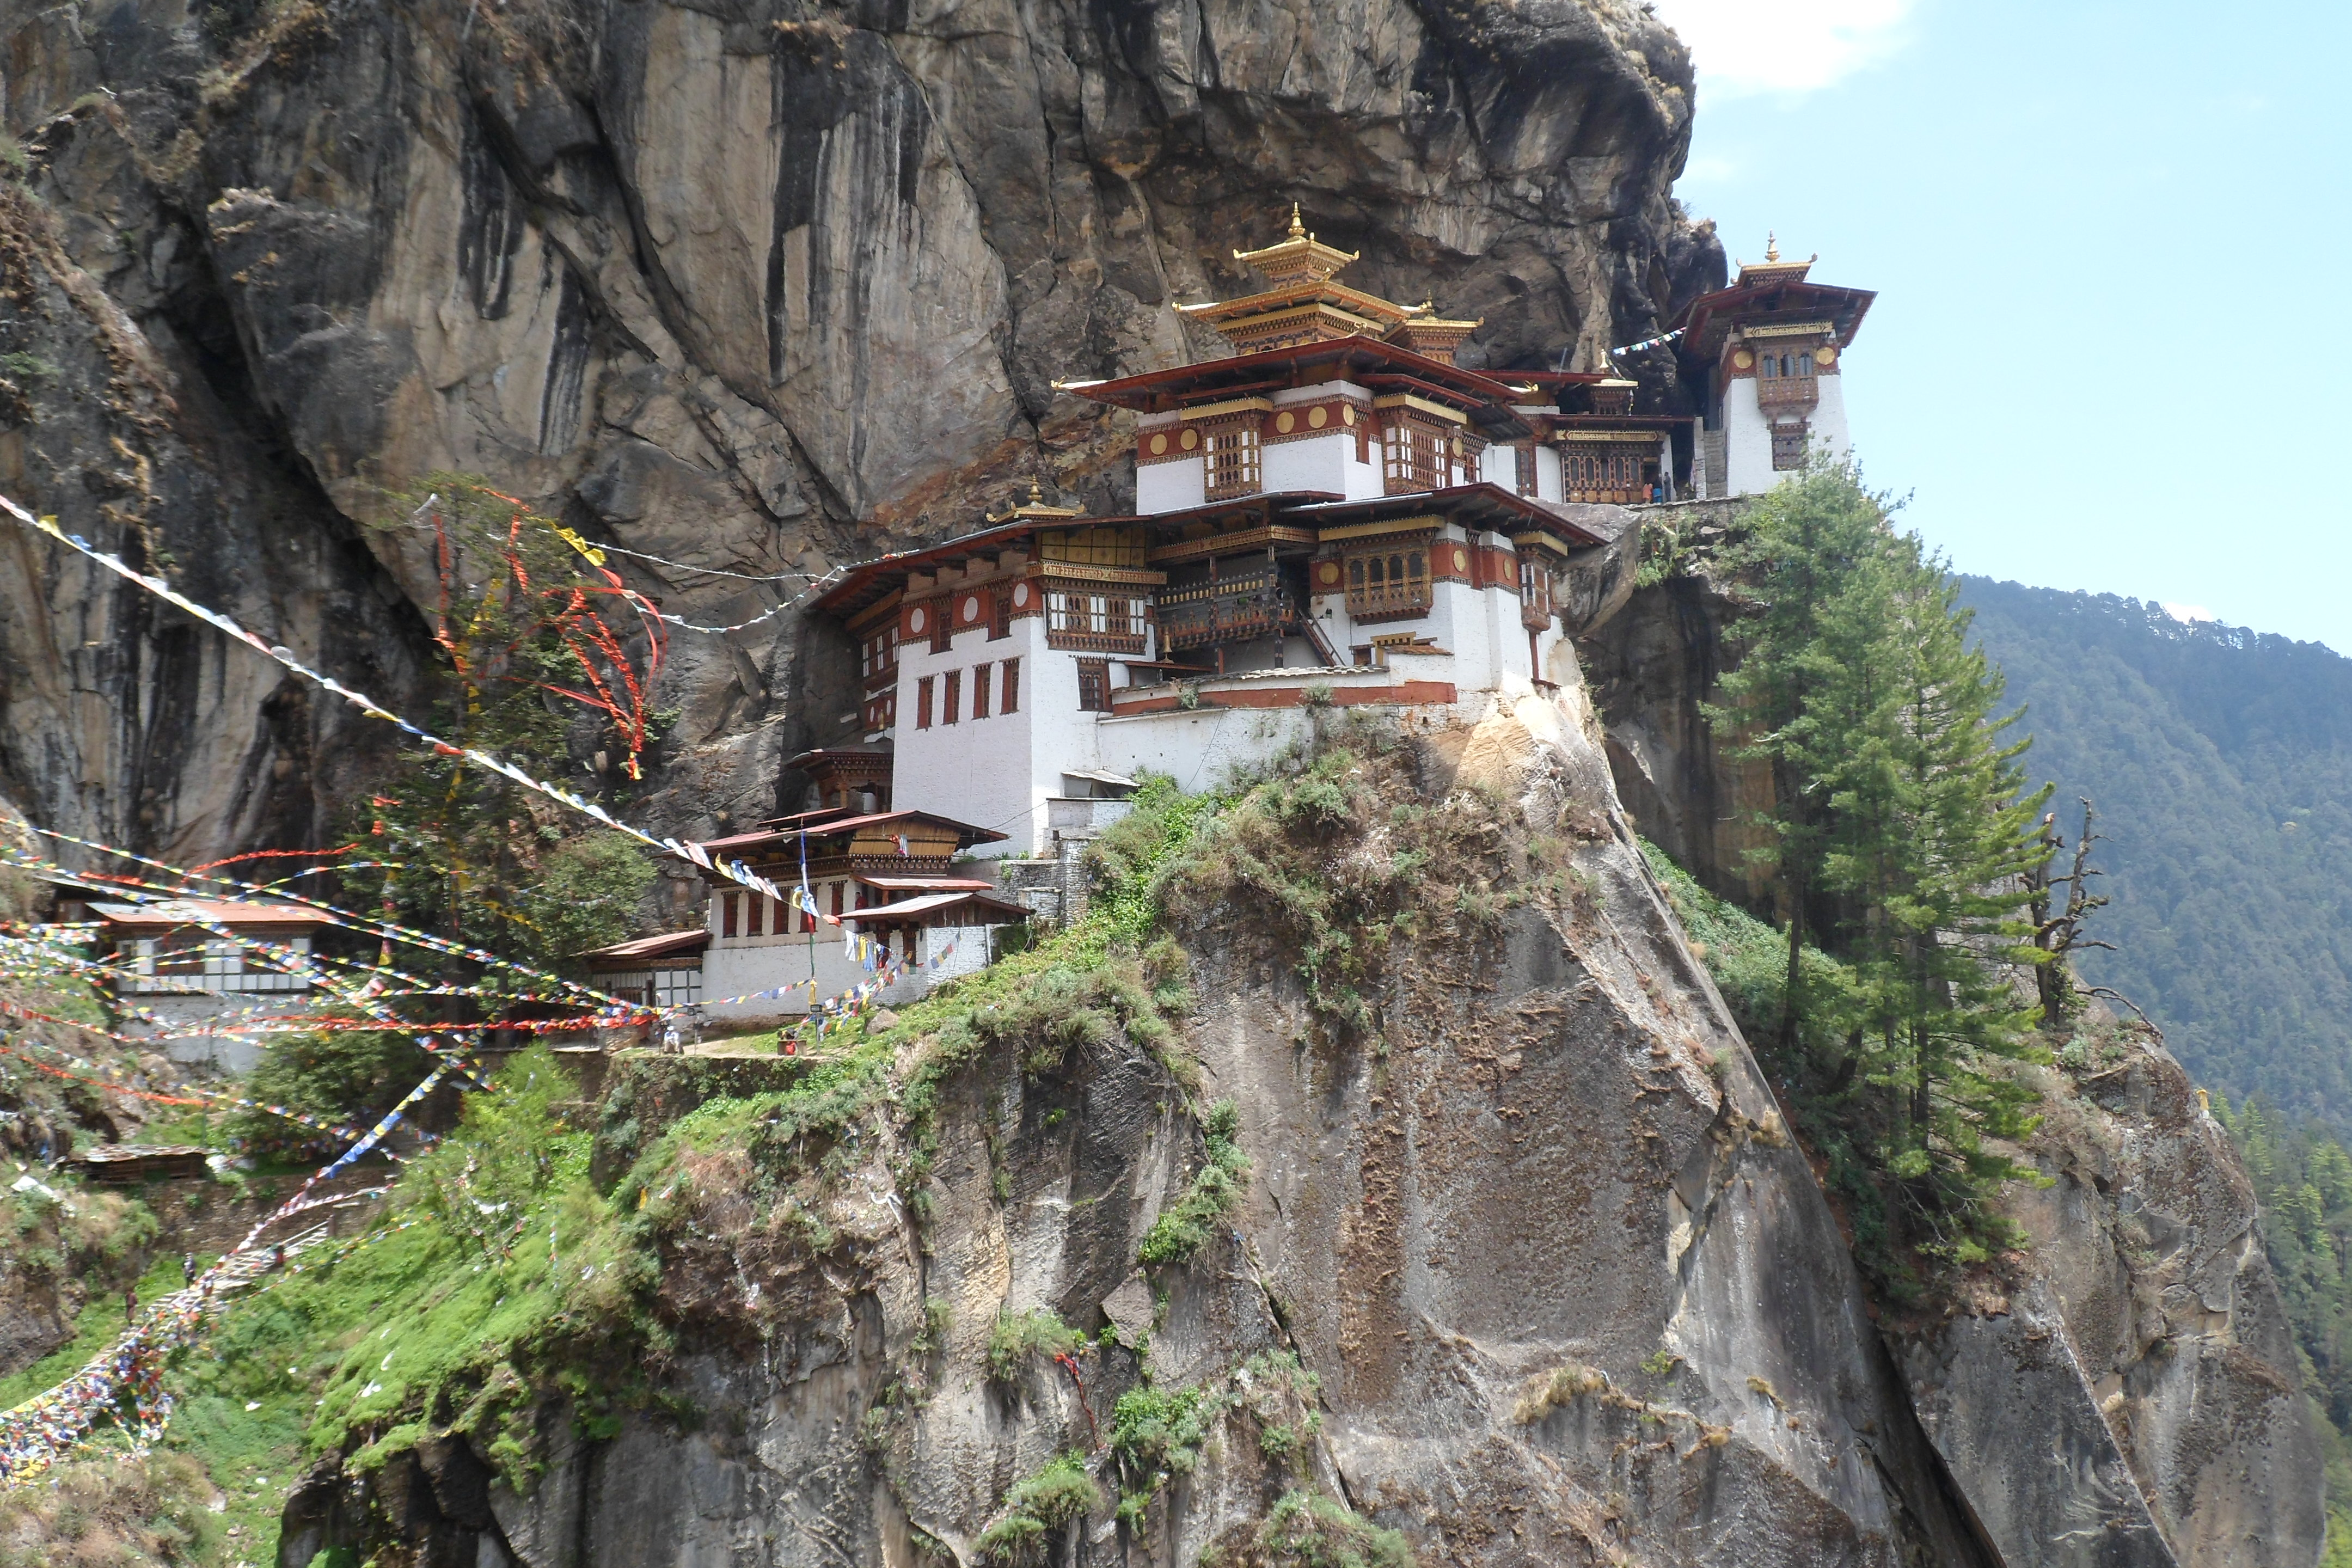 Dilgo Khyentse Rinpoche's Residence Memorial House Upper Paro Valley, May | 2013 | The Rishman Blog